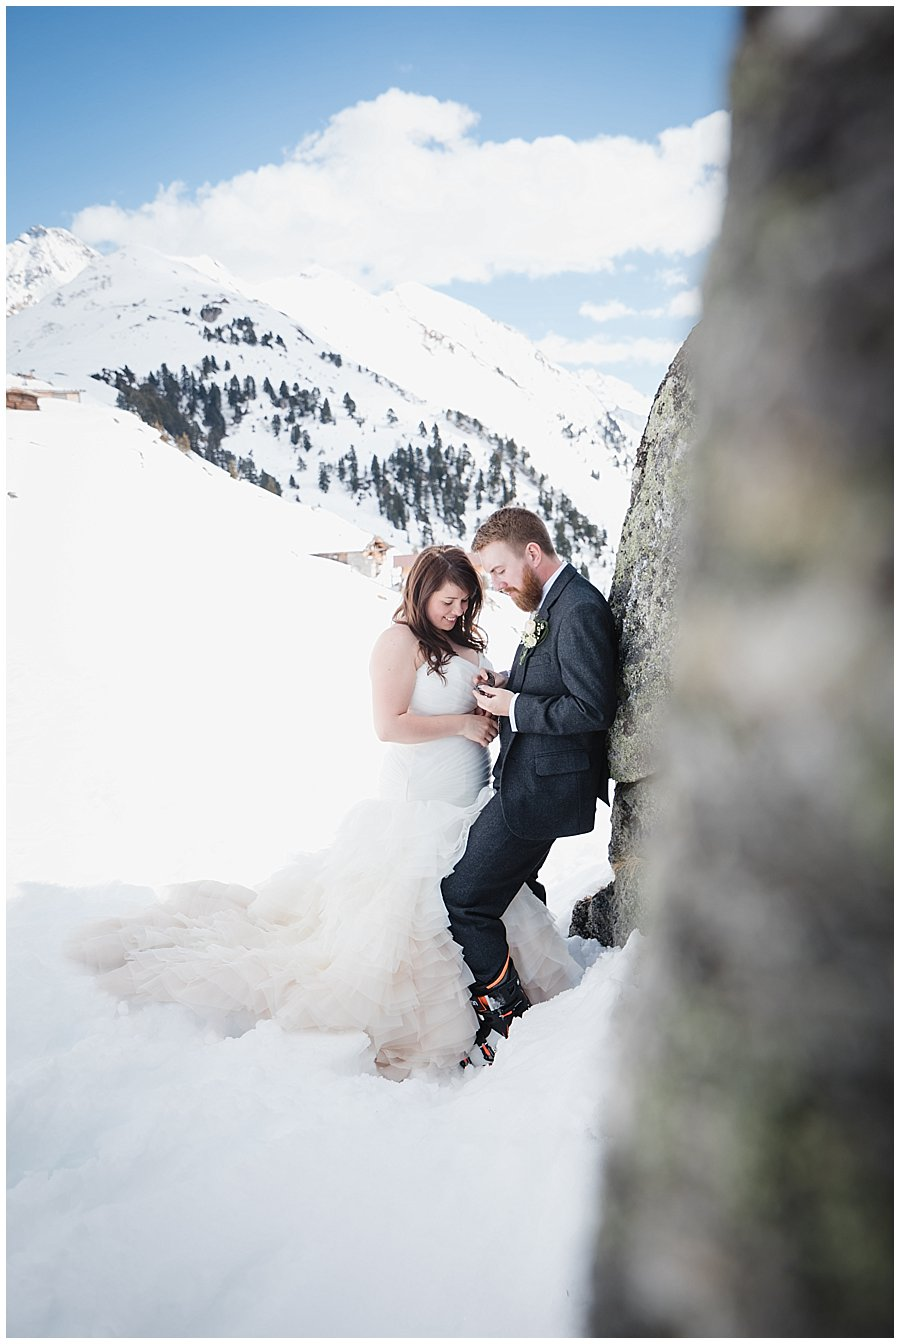 The bride and groom stand closely together in the snow as they look at something the groom is holding